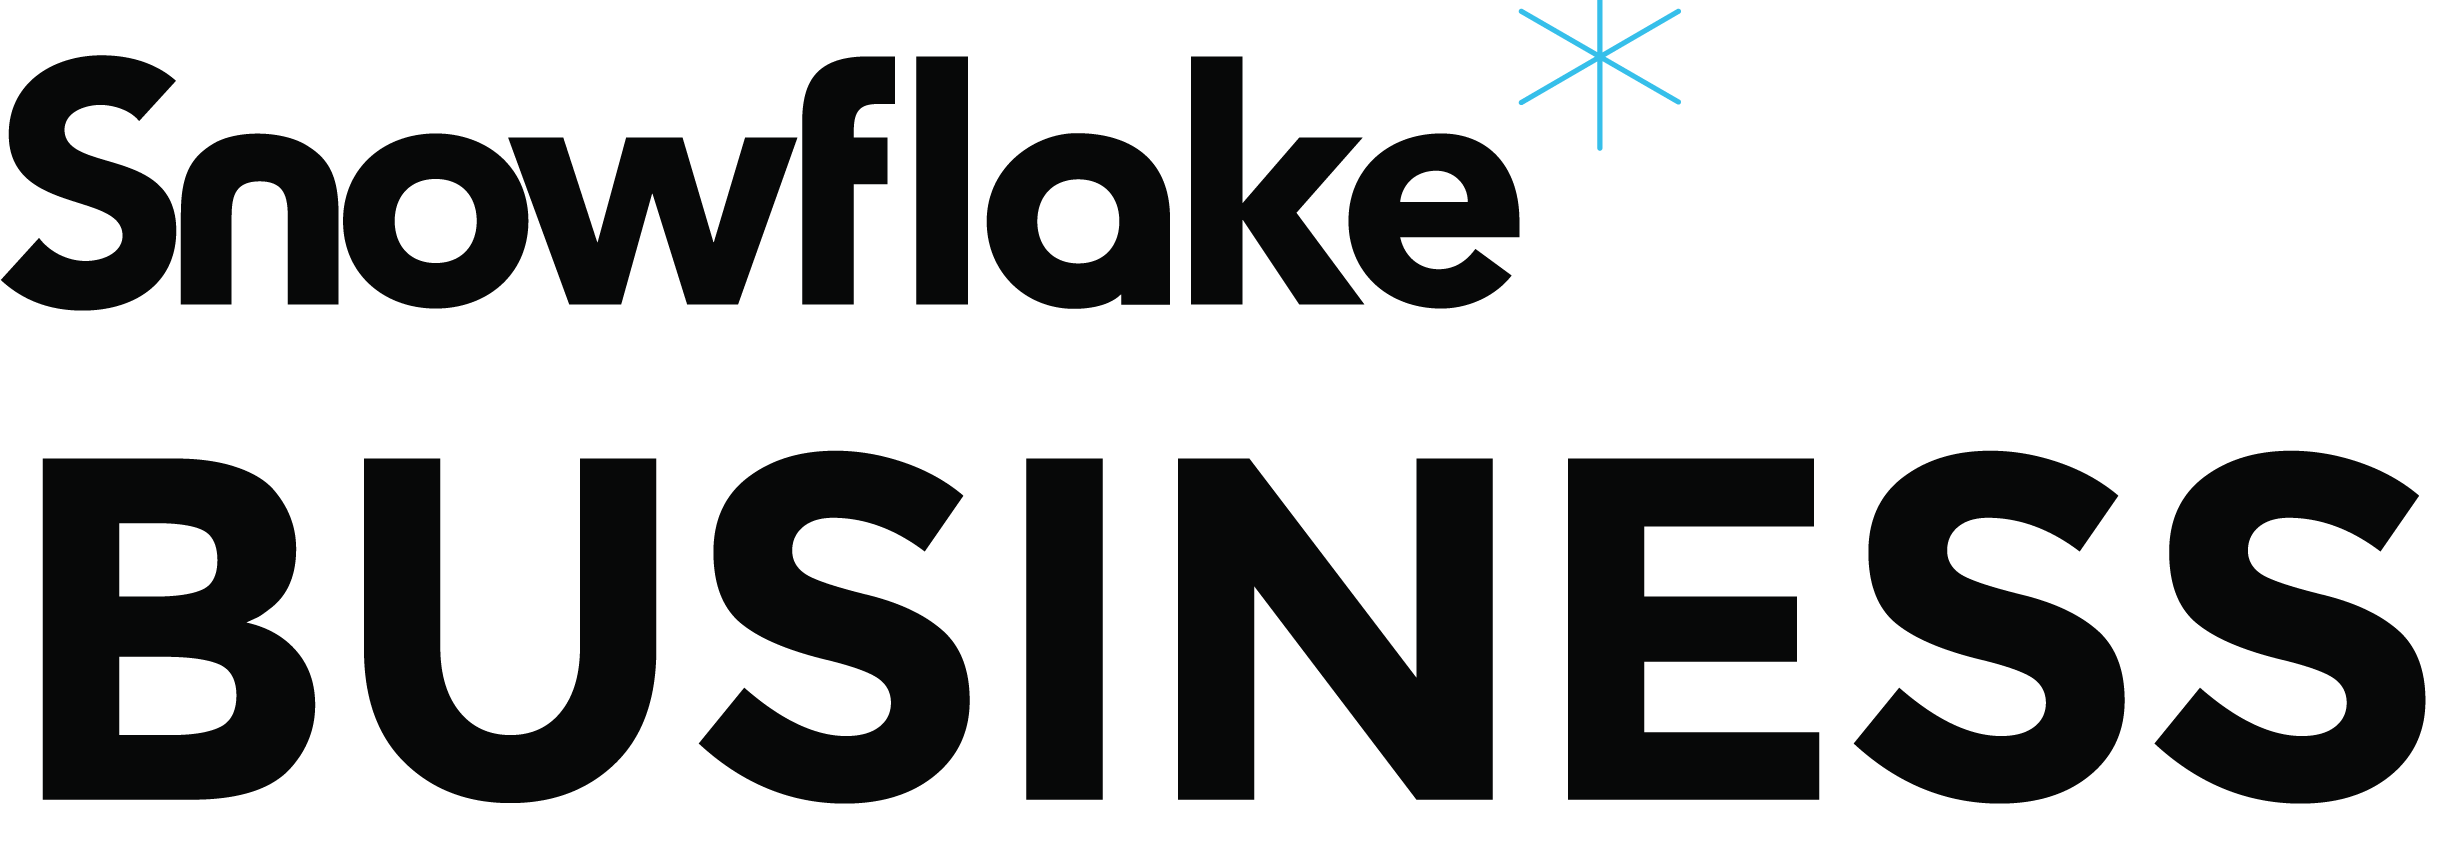 Snowflake Business logo.png